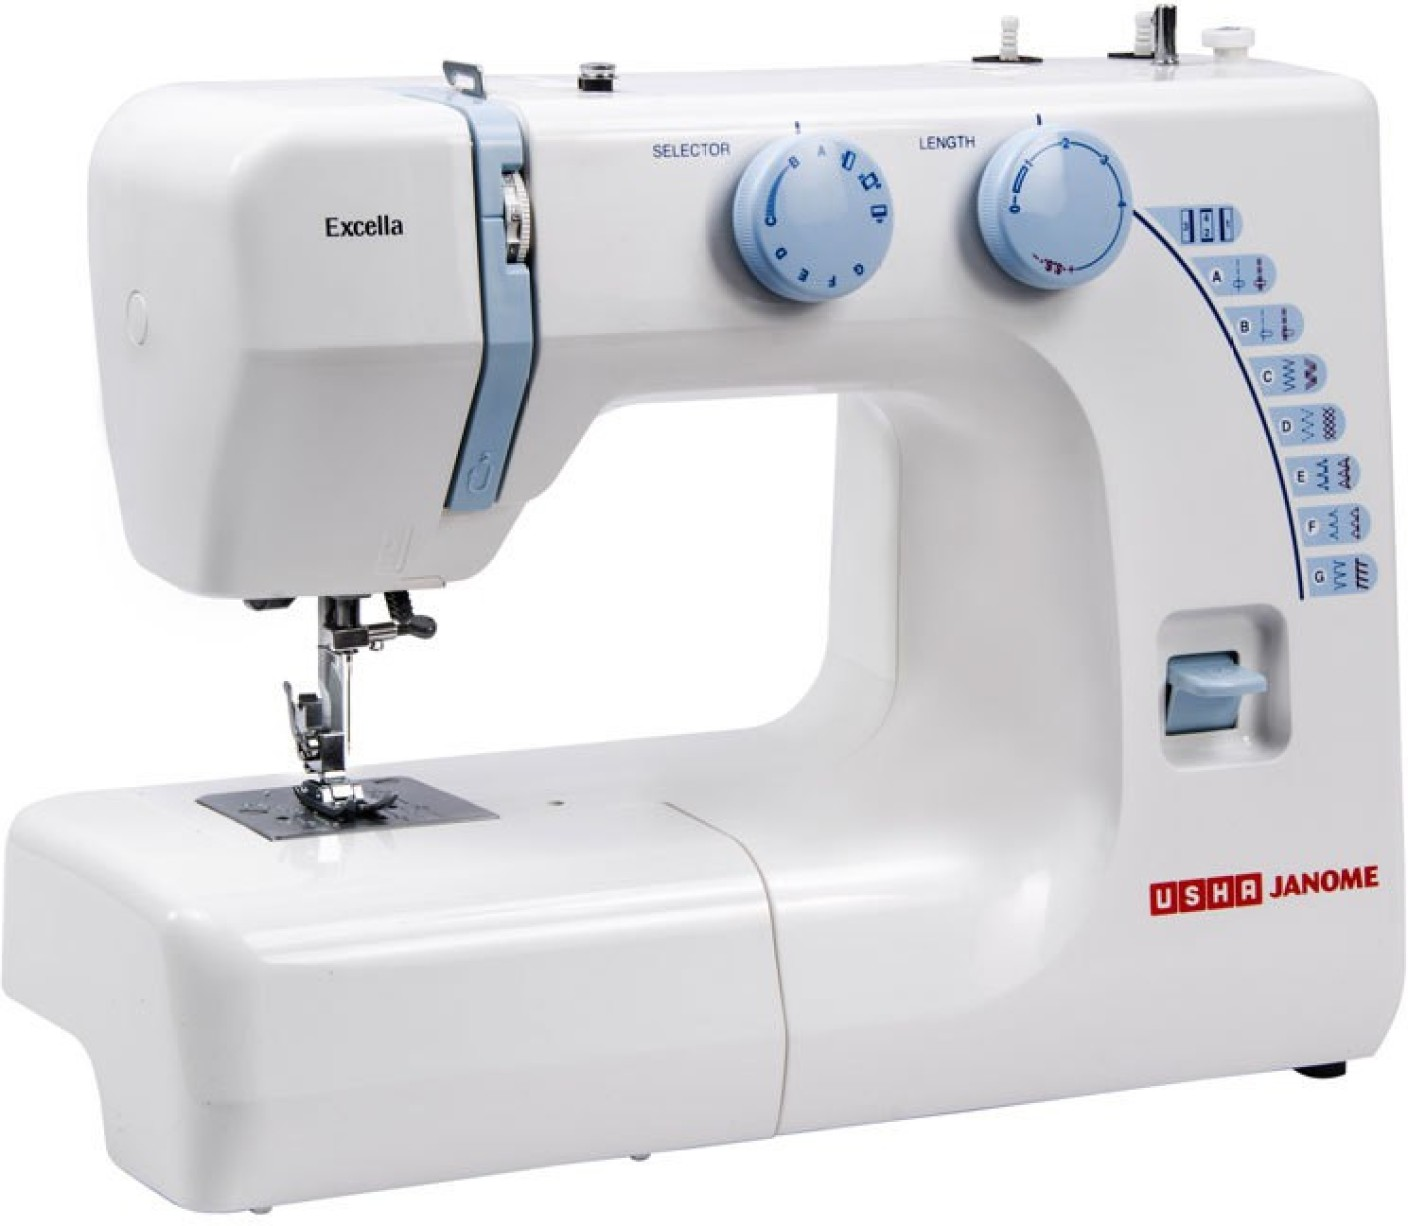 Usha Excella Electric Sewing Machine Price in India - Buy ...